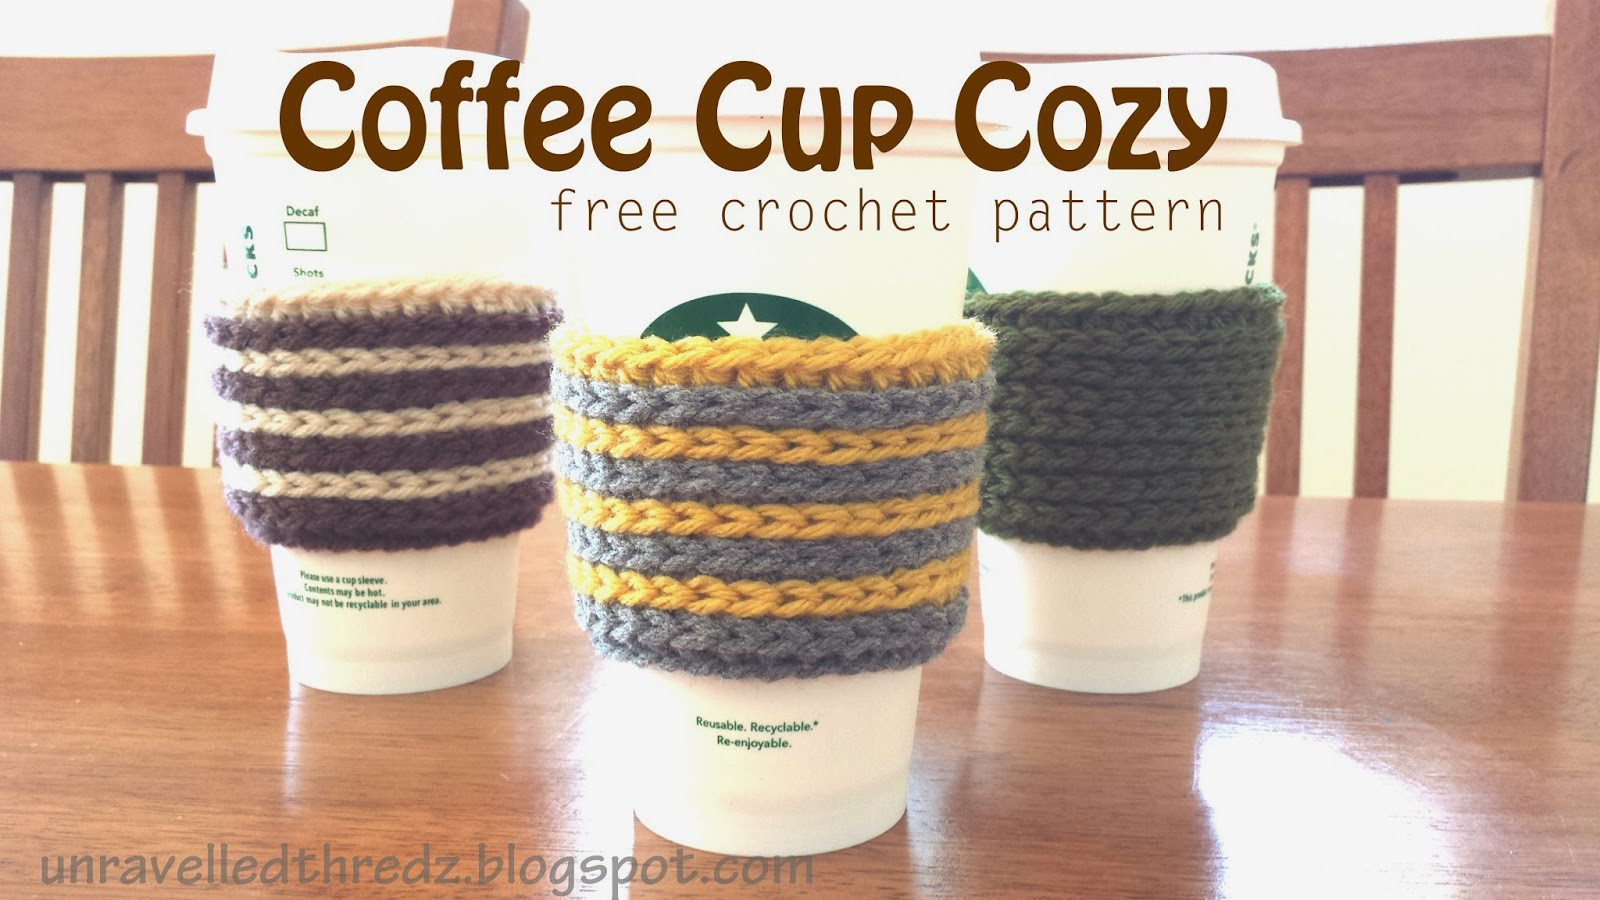 Crochet Coffee Cup Cozy Inspirational Crochet Class Beginning Crochet Sparkleez Crystles Of Crochet Coffee Cup Cozy Fresh 20 Cool Crochet Coffee Cozy Ideas & Tutorials Hative